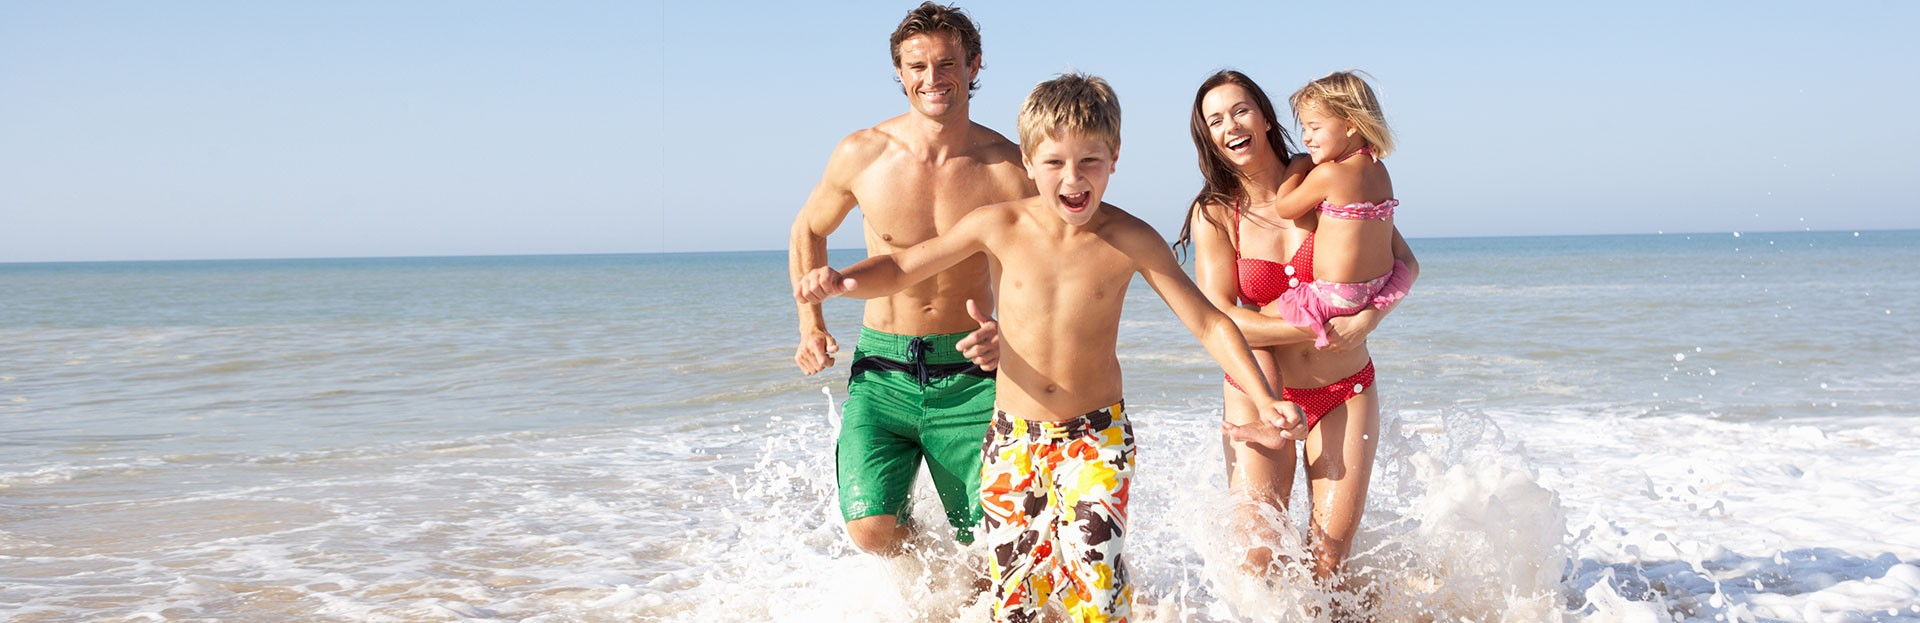 Family Vacations at the Beach from Regina